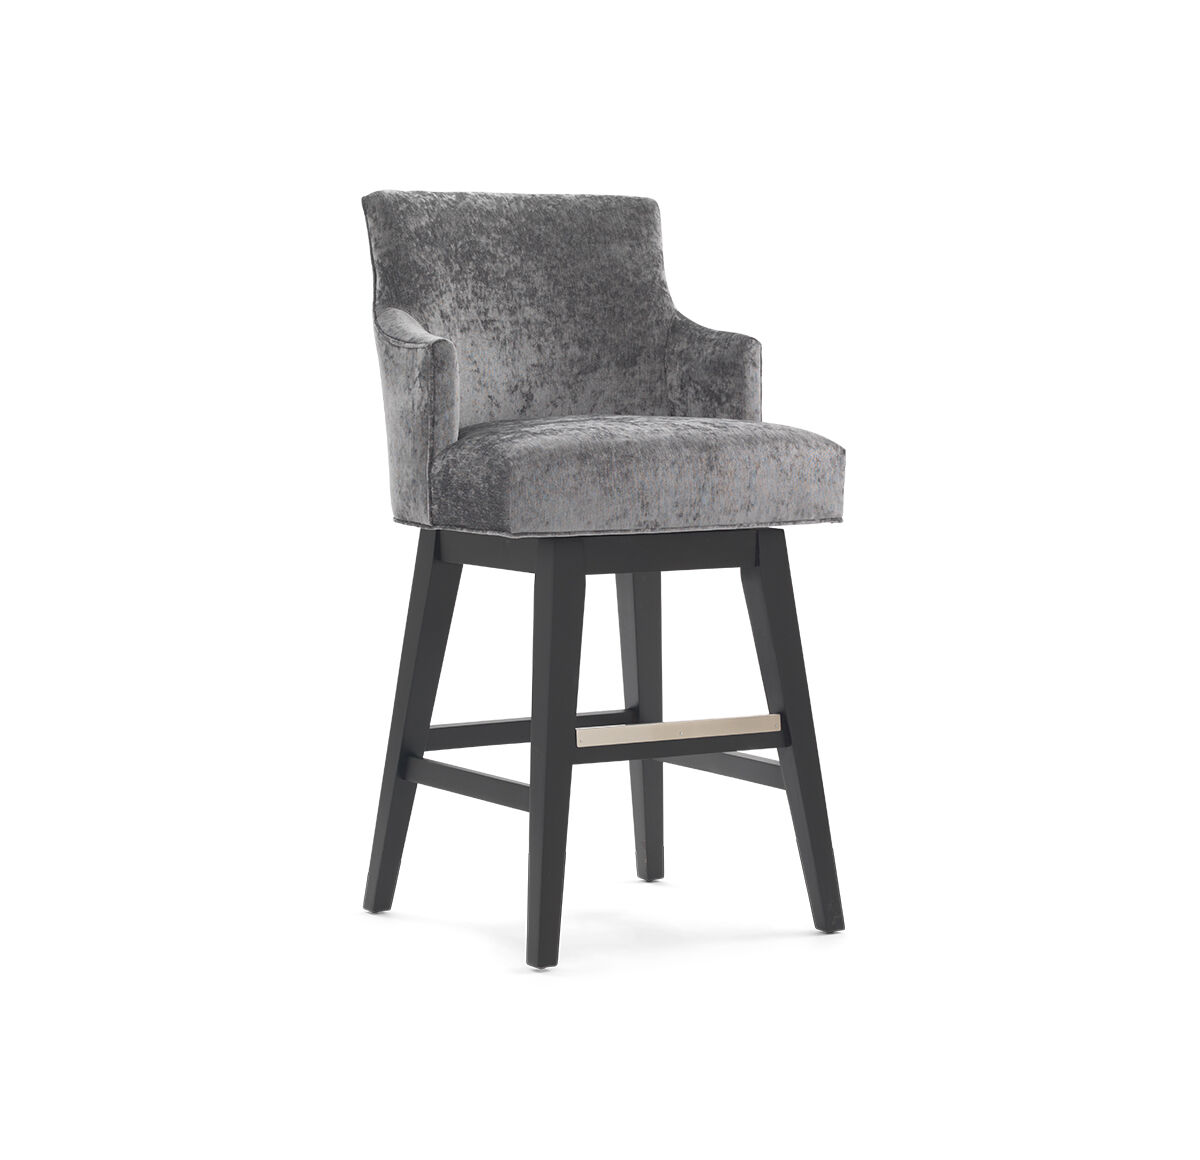 ADA RETURN SWIVEL BAR STOOL - WITH ARMS  hi-res  sc 1 st  Mitchell Gold + Bob Williams : swivel bar stool with arms - islam-shia.org